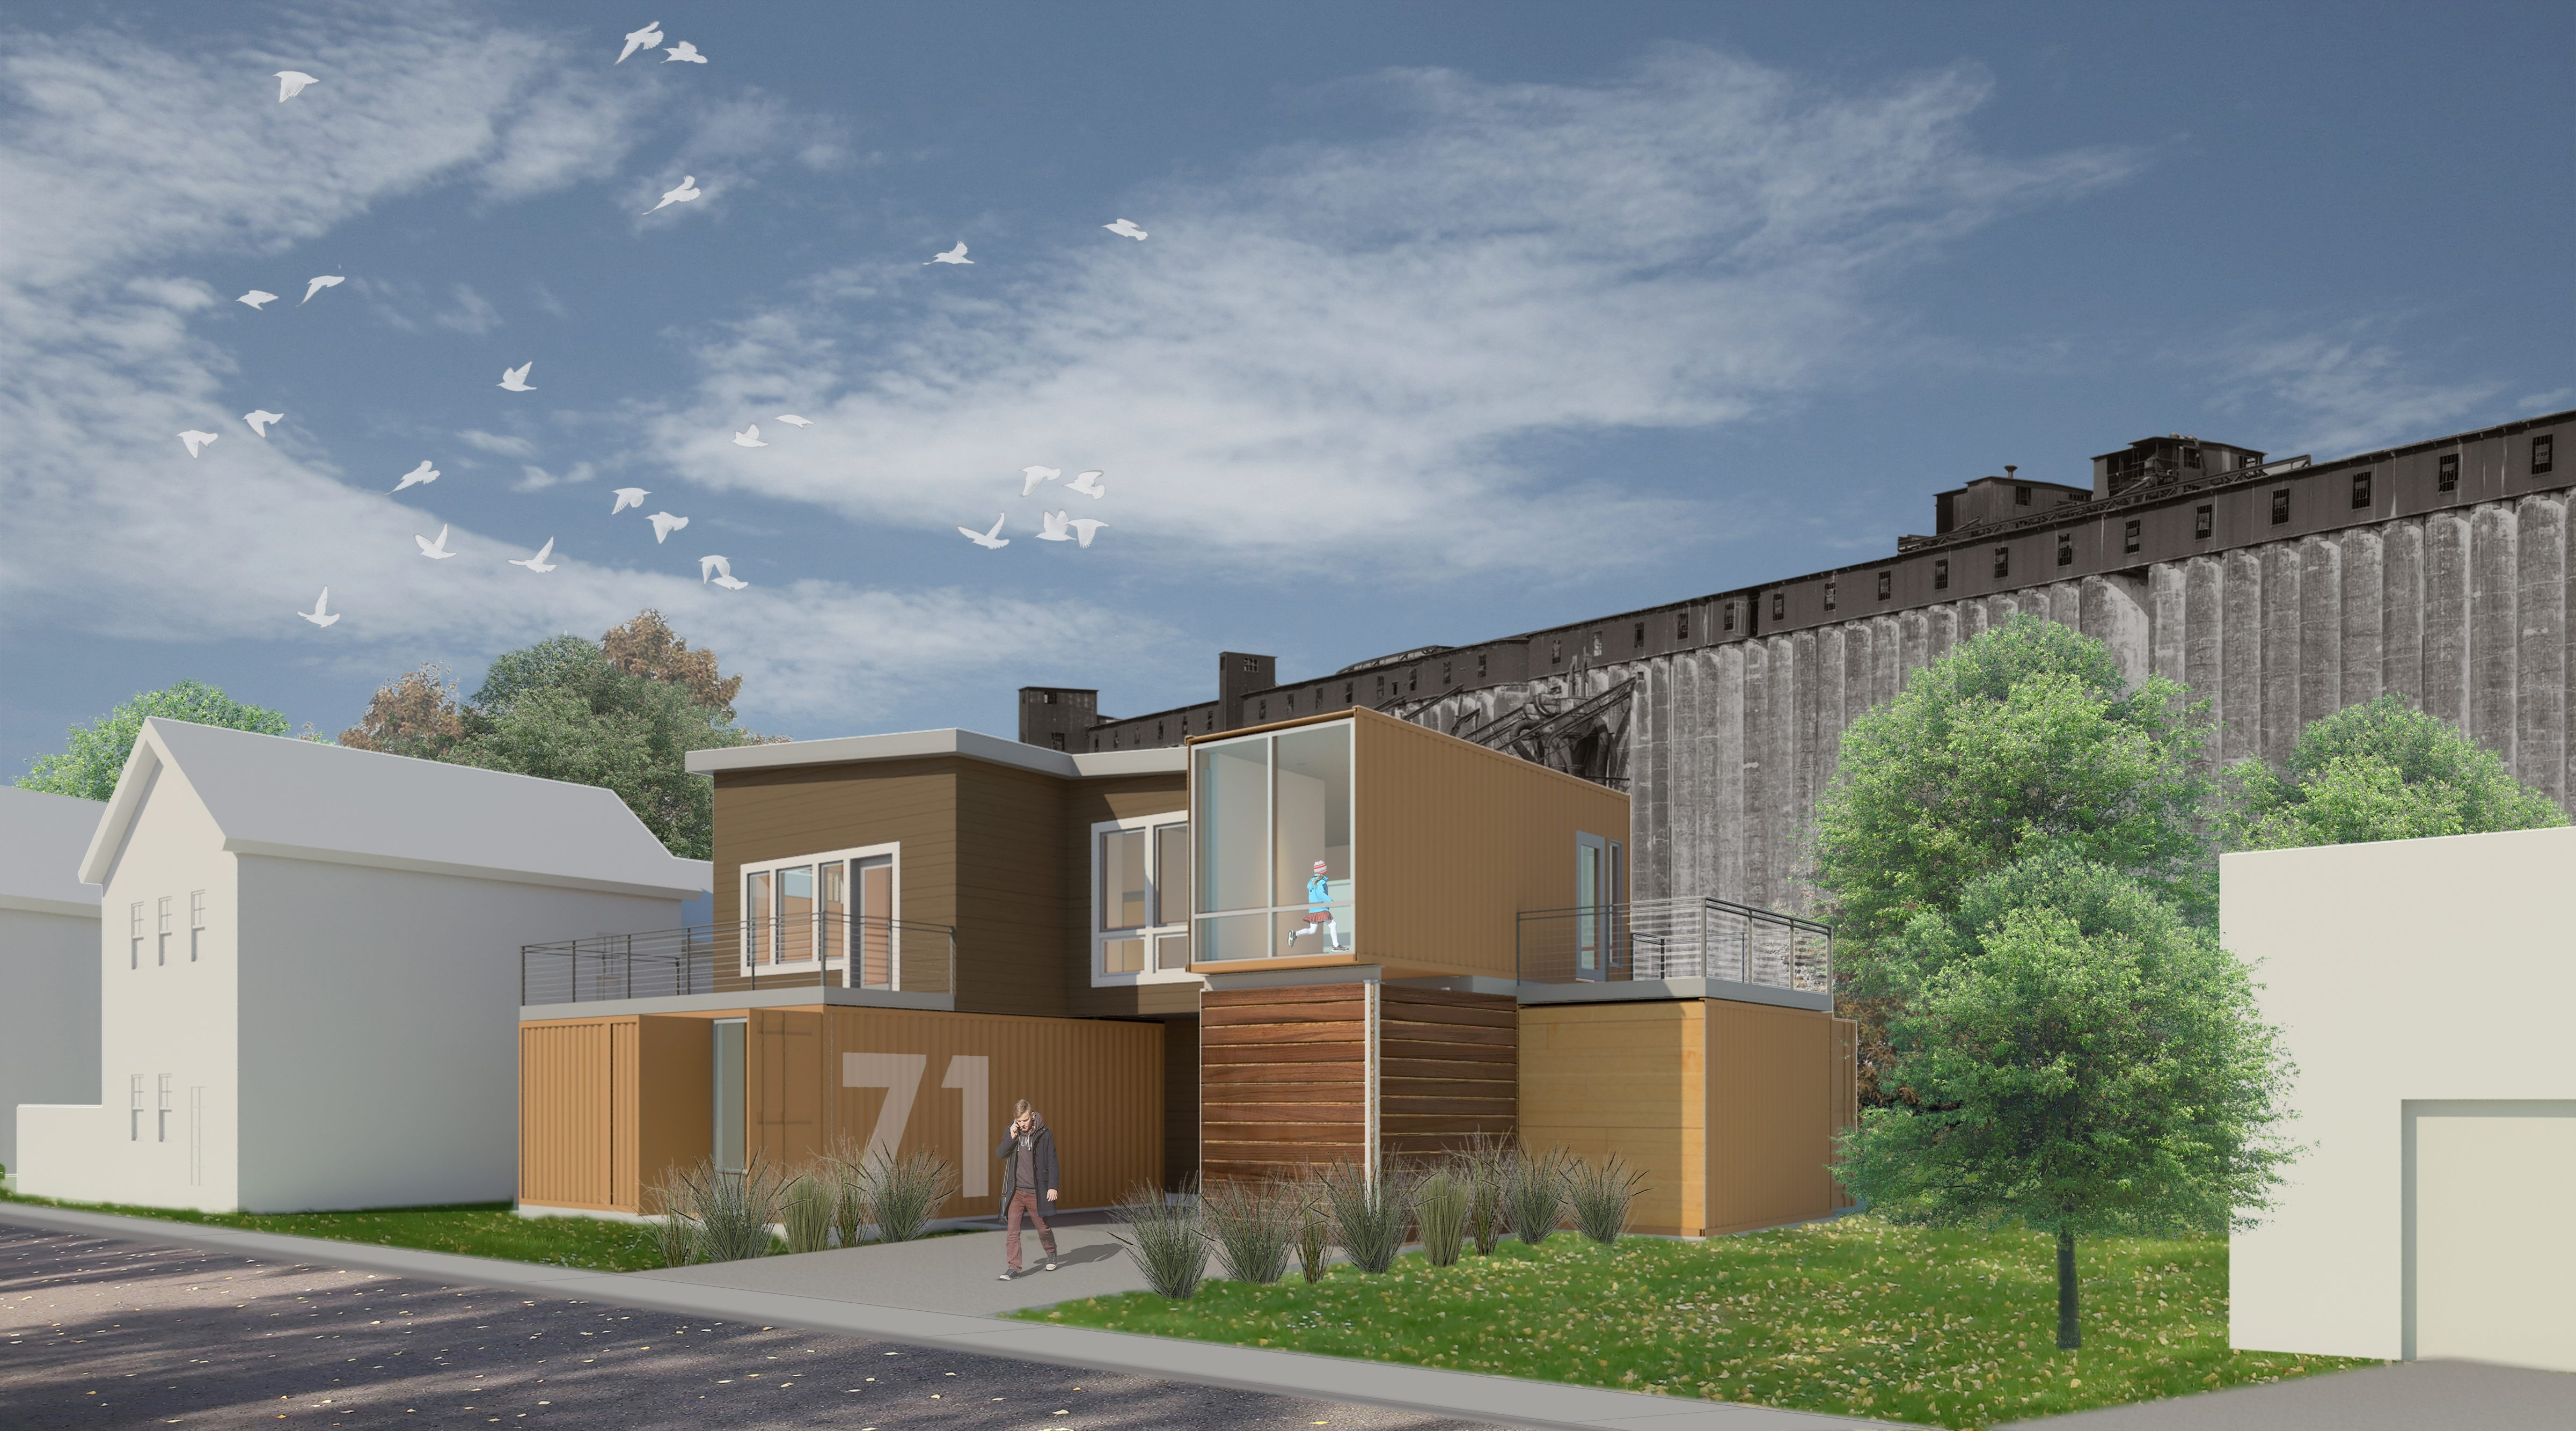 The Buffalo Planning Board approved plans for this home, which will be partially built out of five shipping containers. The site of the project is on Louisiana Street in the Old First Ward.